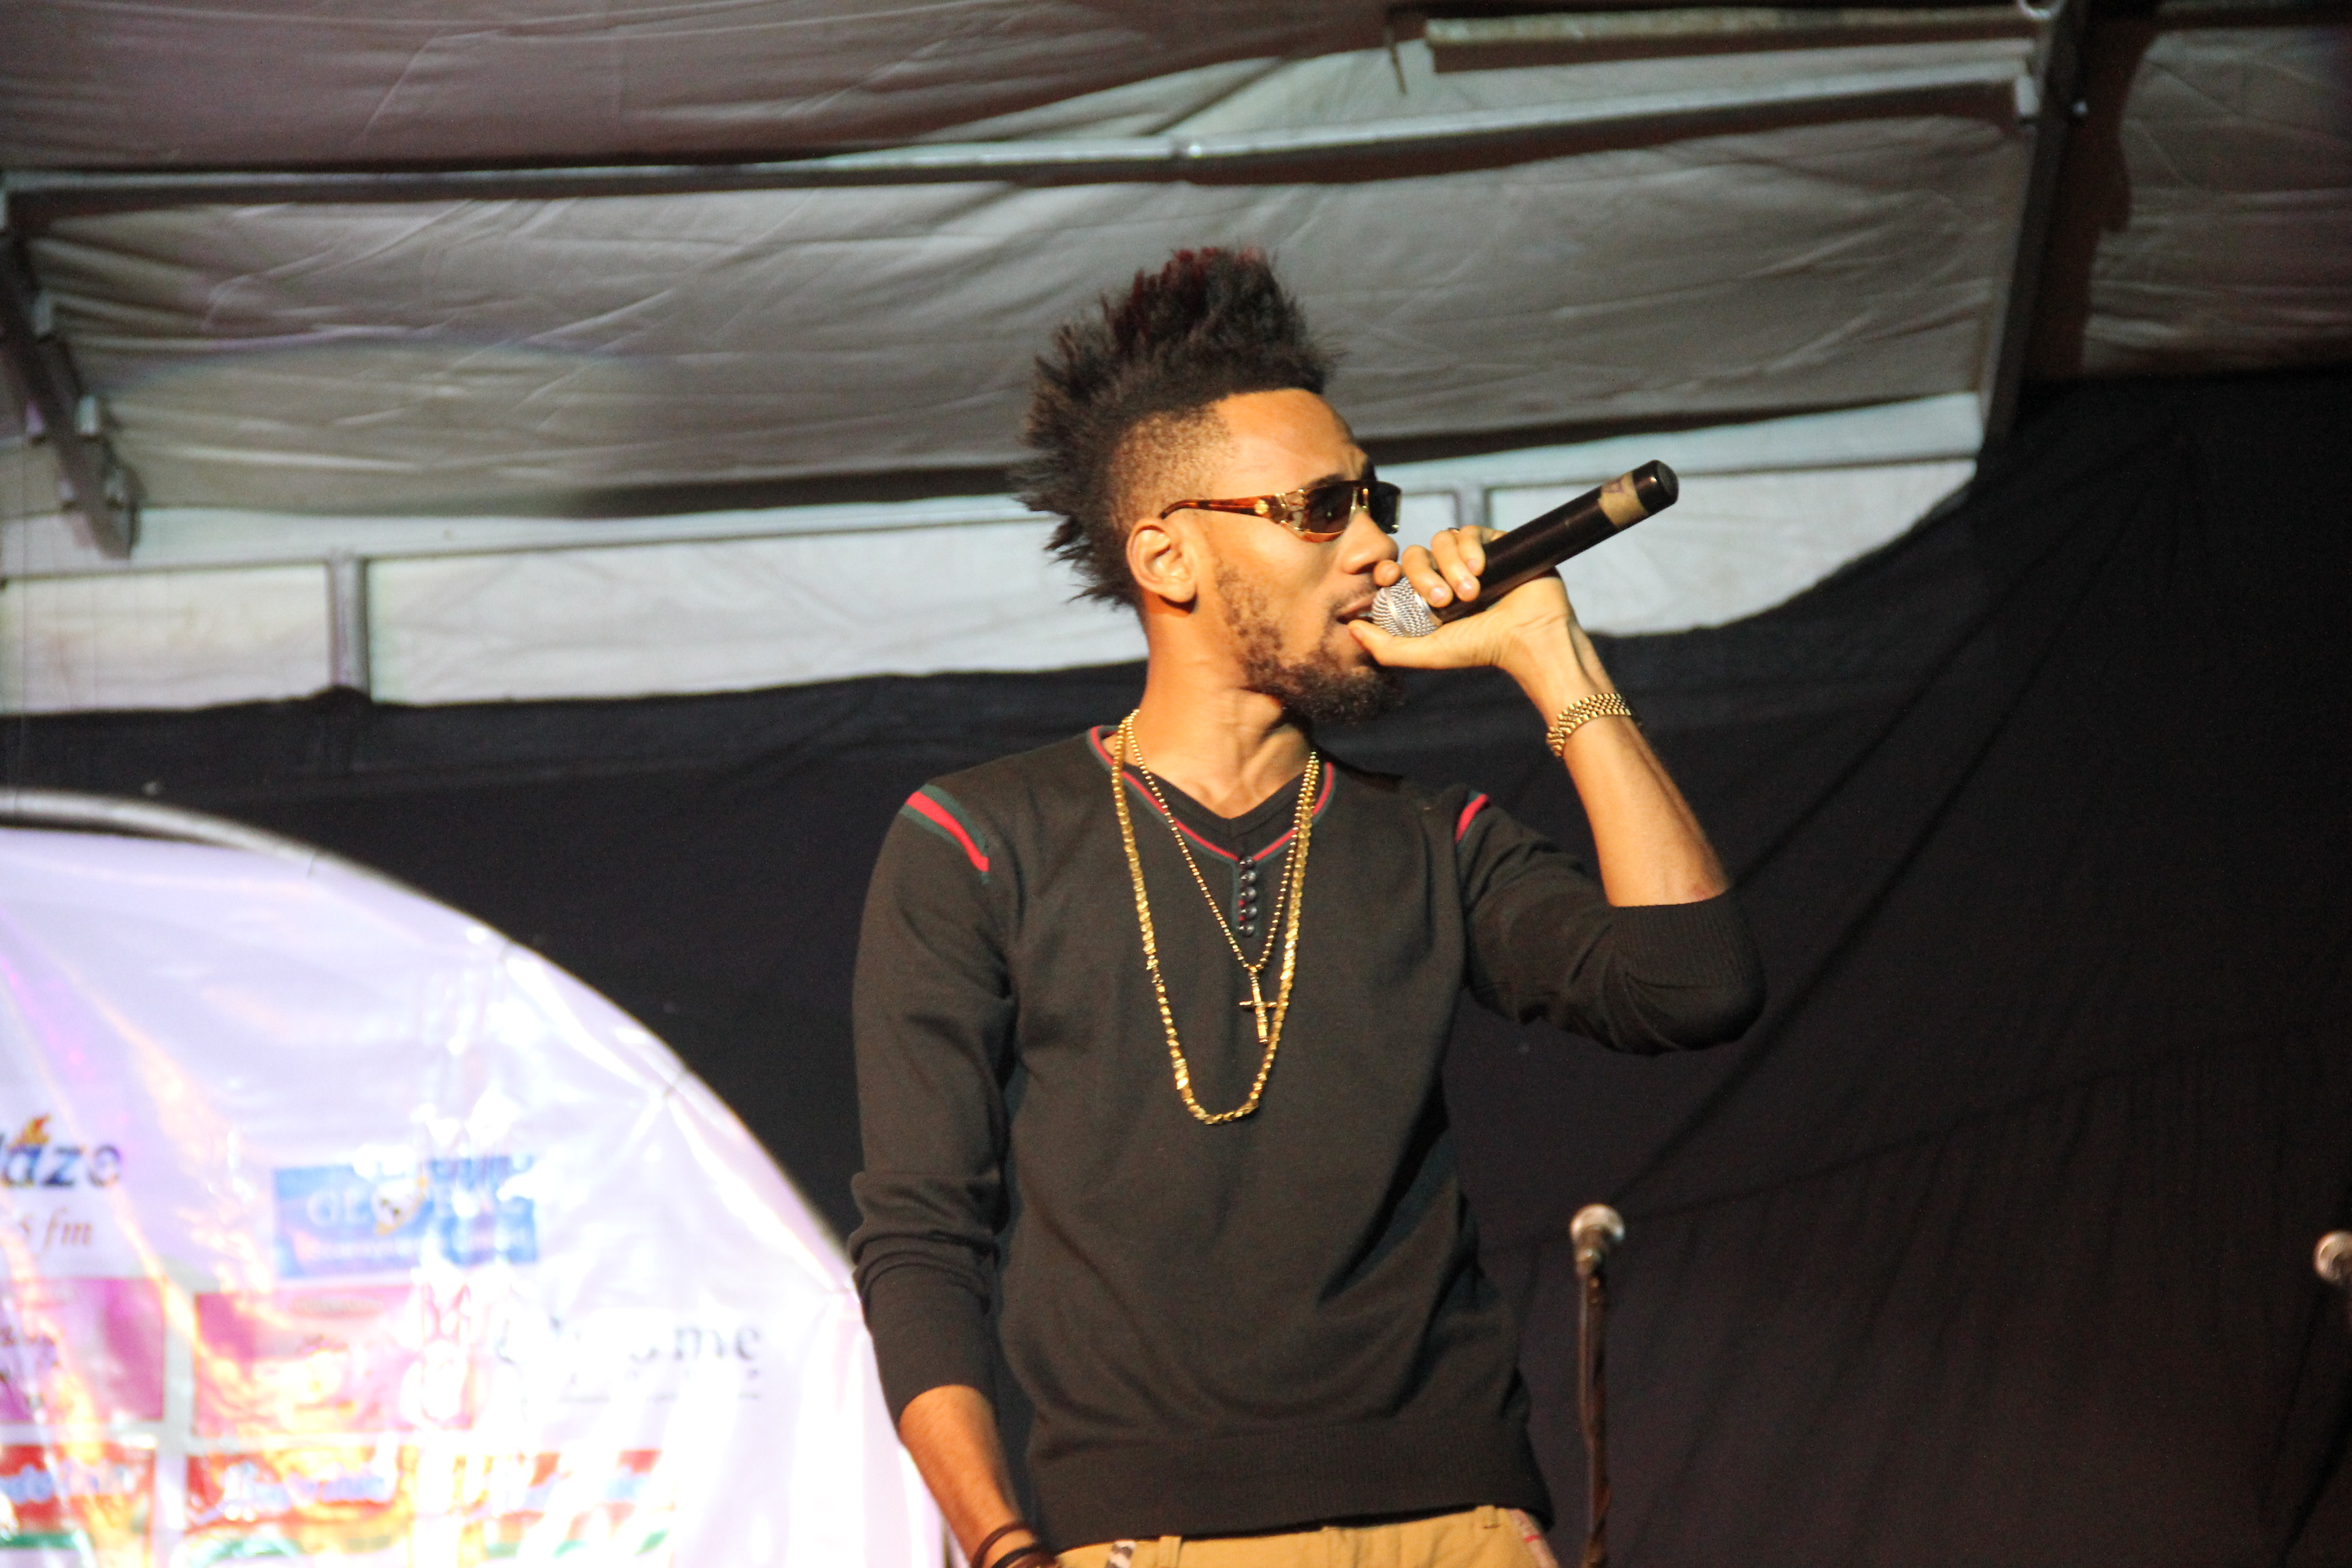 Phyno performing Ghost mode on stage